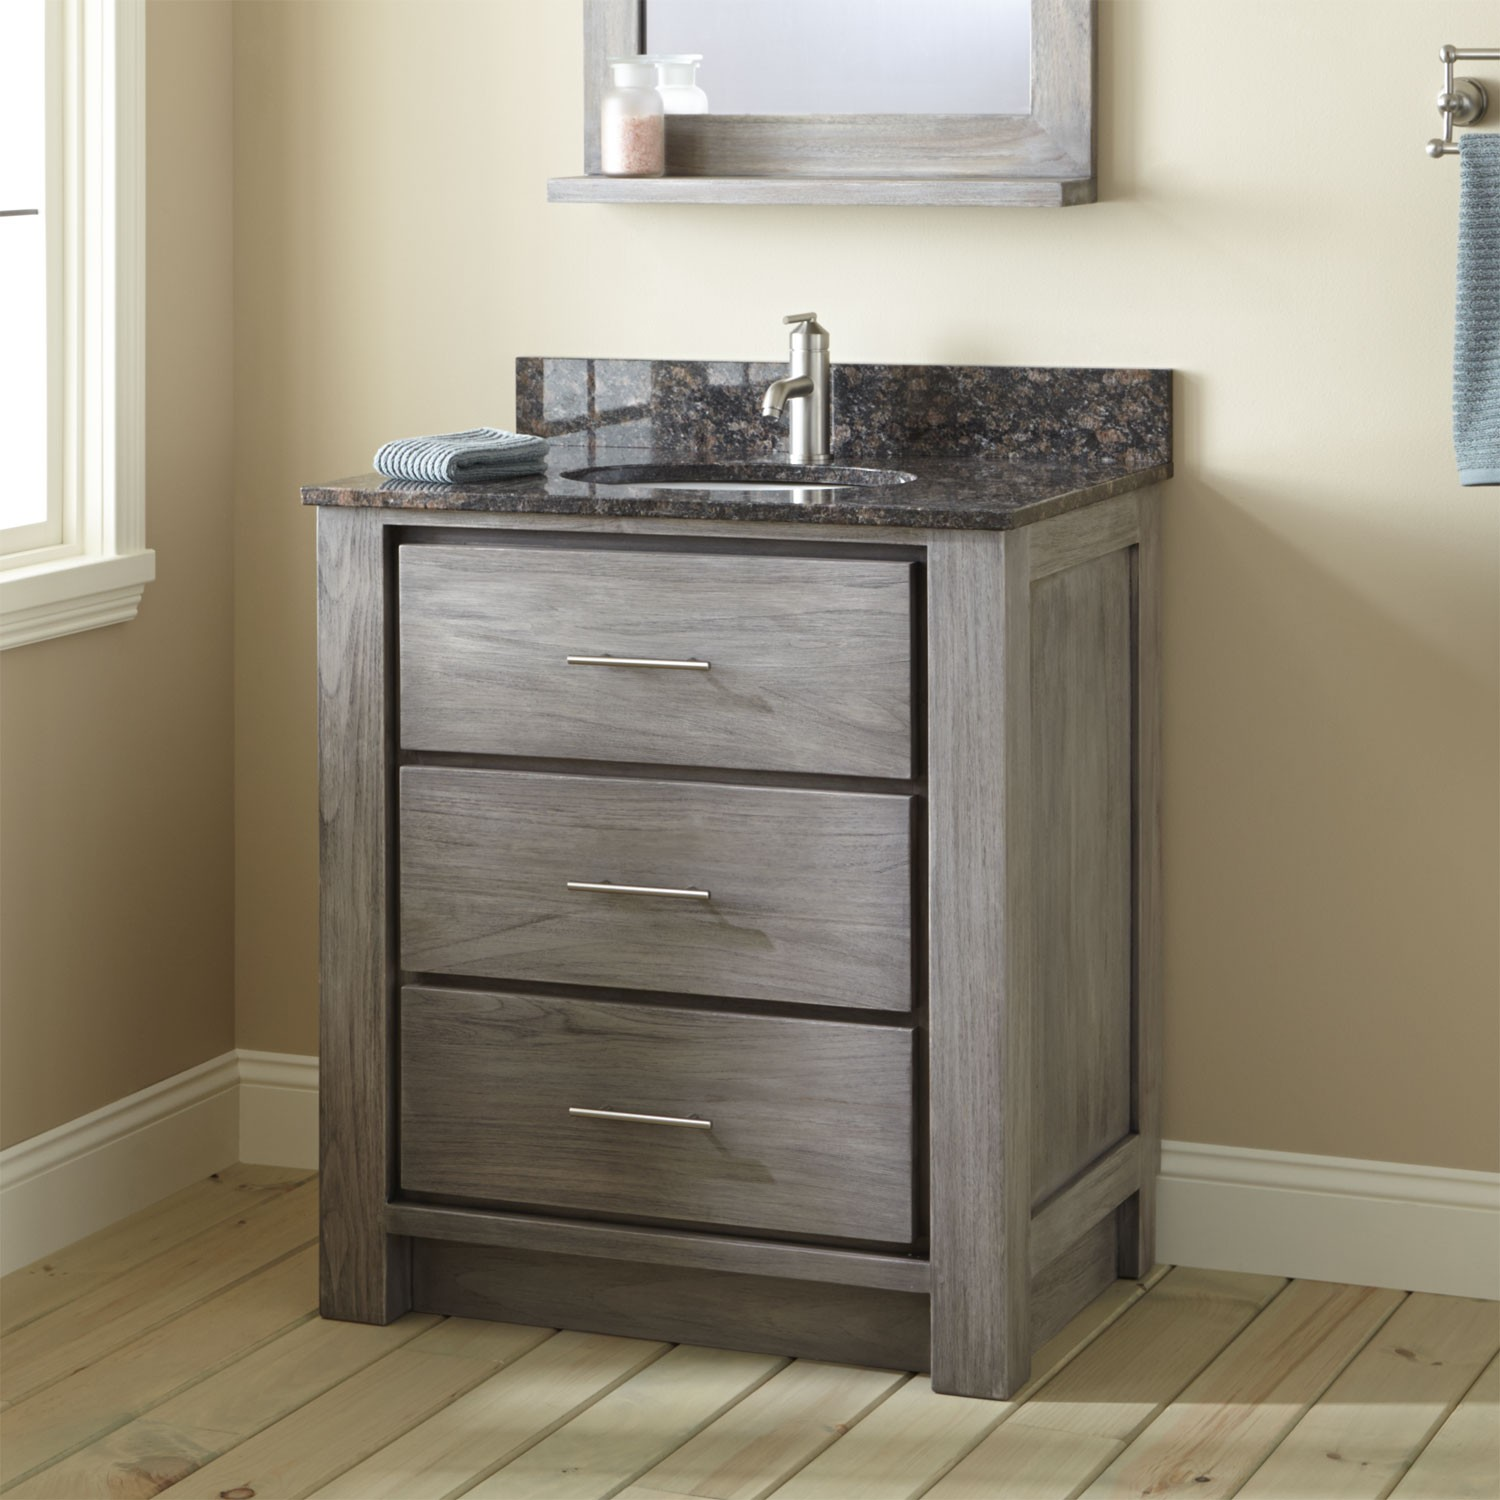 lacking sinks rustic picture furniture eva bathroom and small vanities space design vanity layouts for